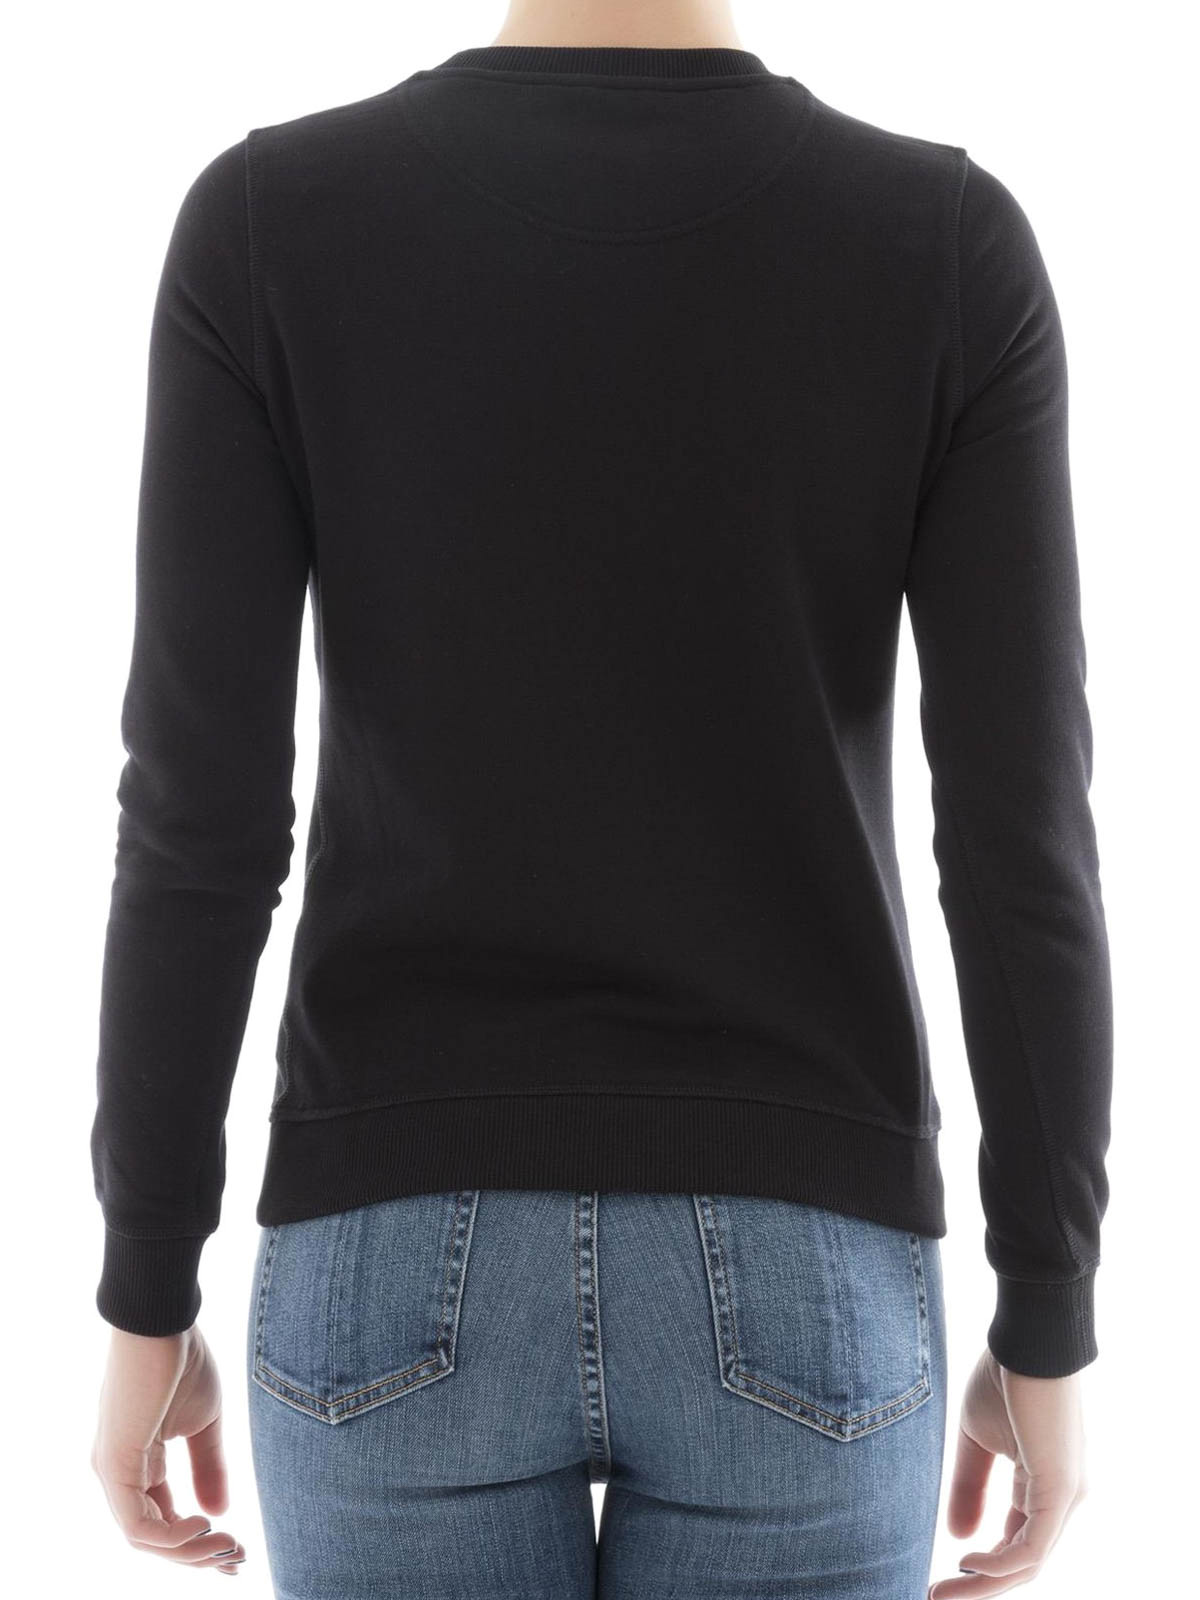 BLACK COTTON SWEATSHIRT Black cotton sweatshirt. Snaps closure. Long sleeves. Composition: % Cotton , Login to see more detail. Login to see more detail. Read Review. Final Sale! Read Review. Offers (1 in total) Final Sale! More. Subscribe To Alerts For This Product.